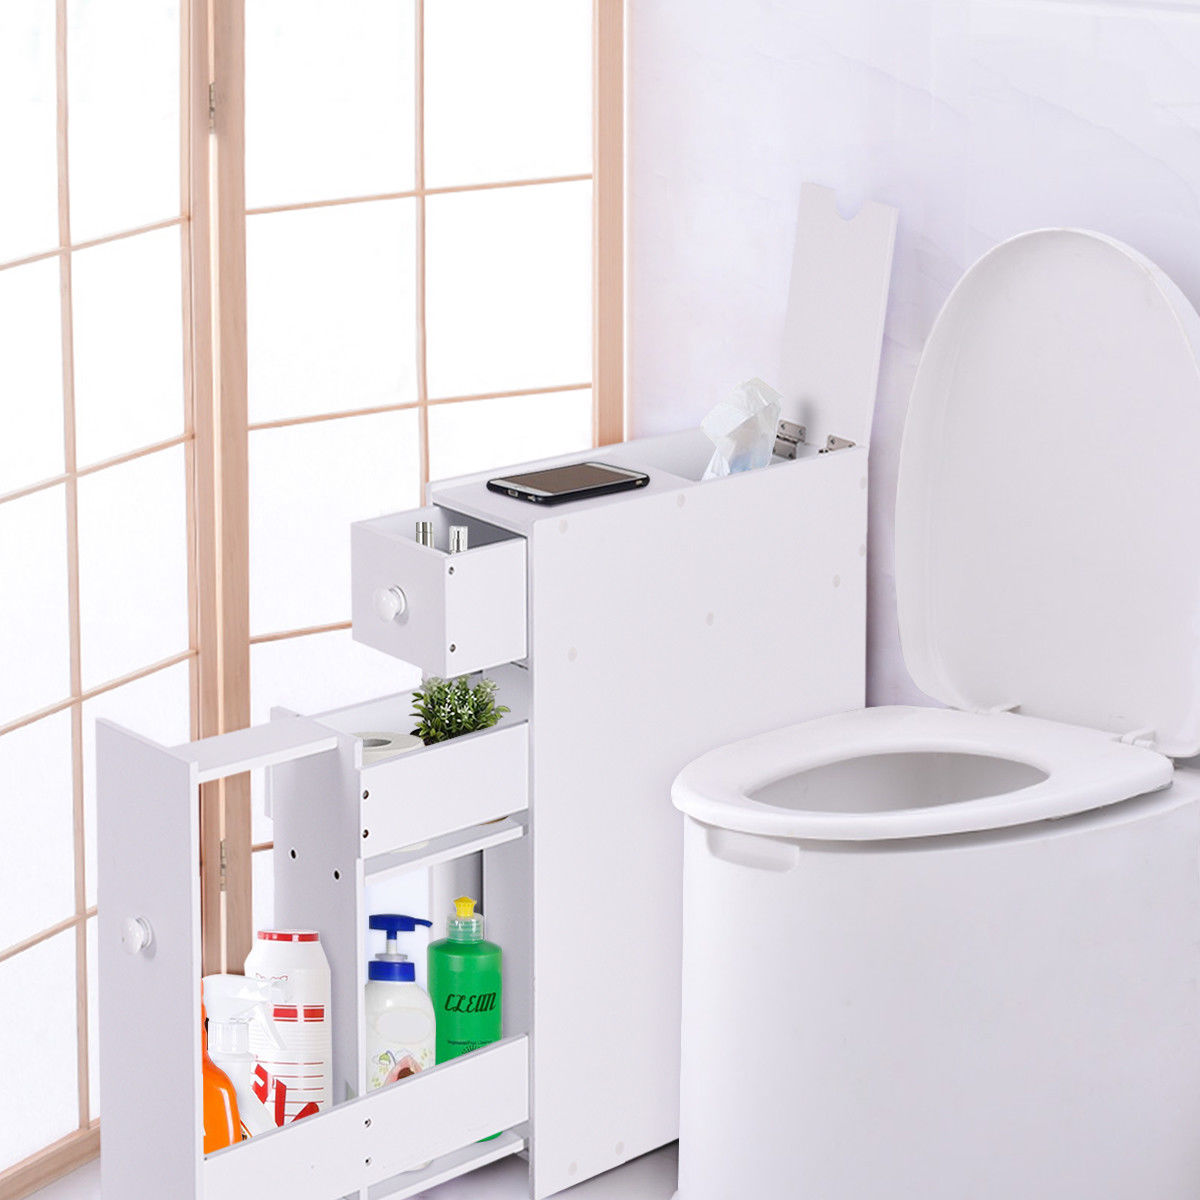 Costway Narrow Wood Floor Bathroom Storage Cabinet Holder Organizer Bath Toilet by Costway